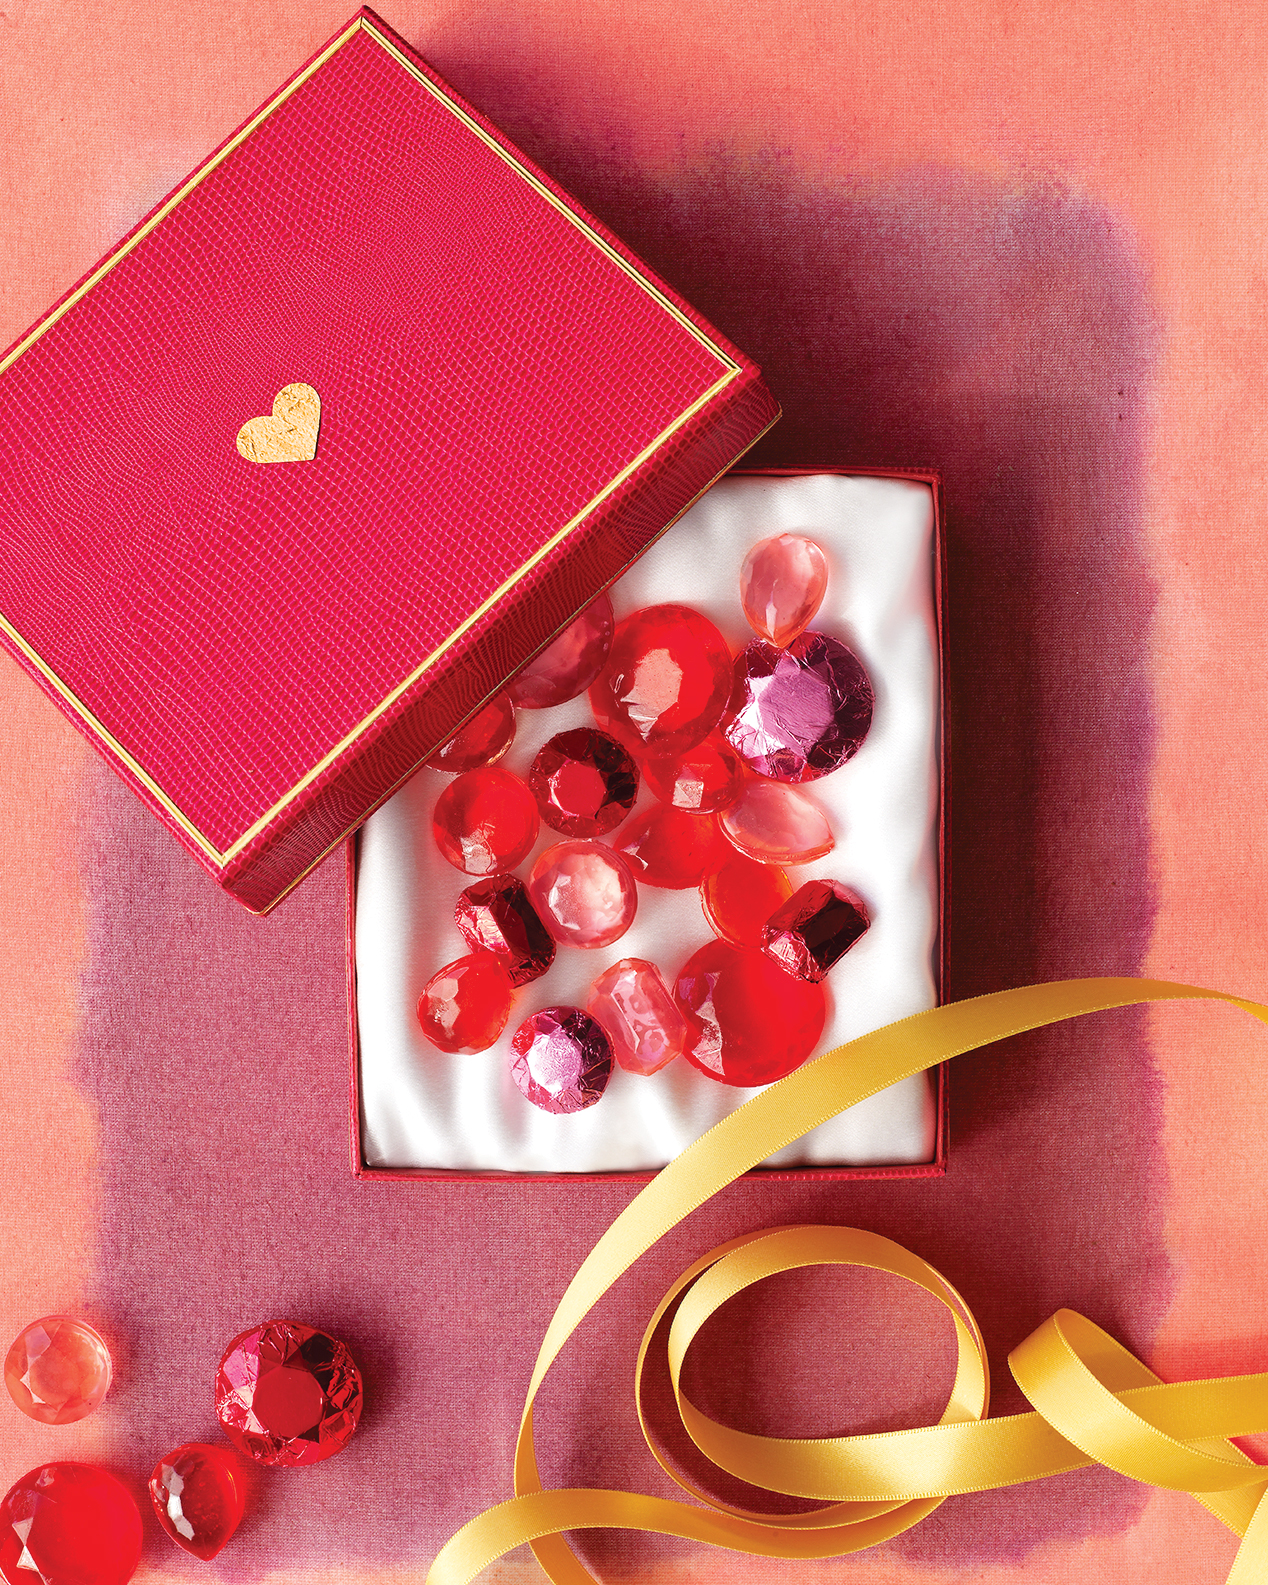 For your dazzling dears, stock a jewelry box full of edible gemstones in luminous pinks, reds, and corals that are a thrill to behold—and to eat.